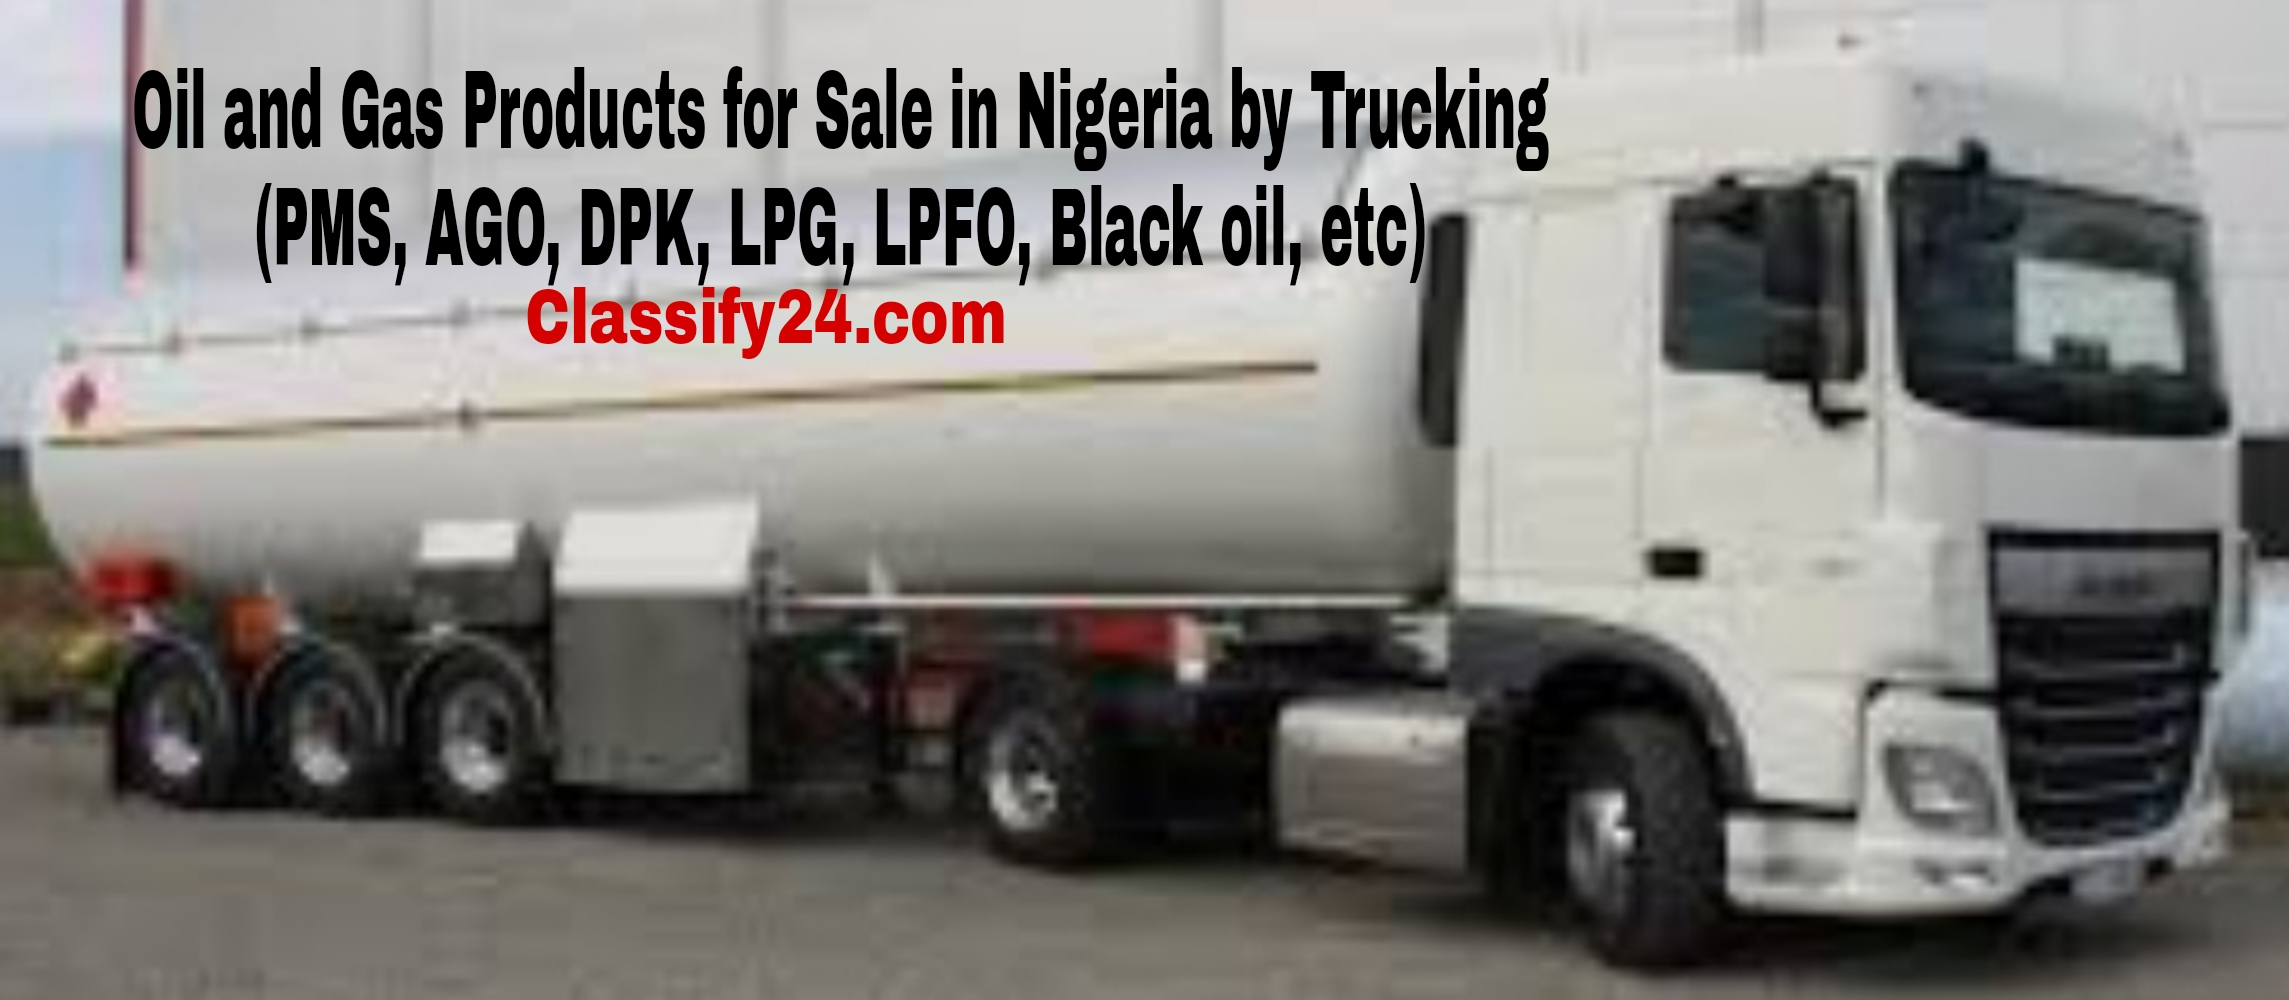 Buy oil and gas products for sale Nigeria, buy petroleum products for sale in Nigeria